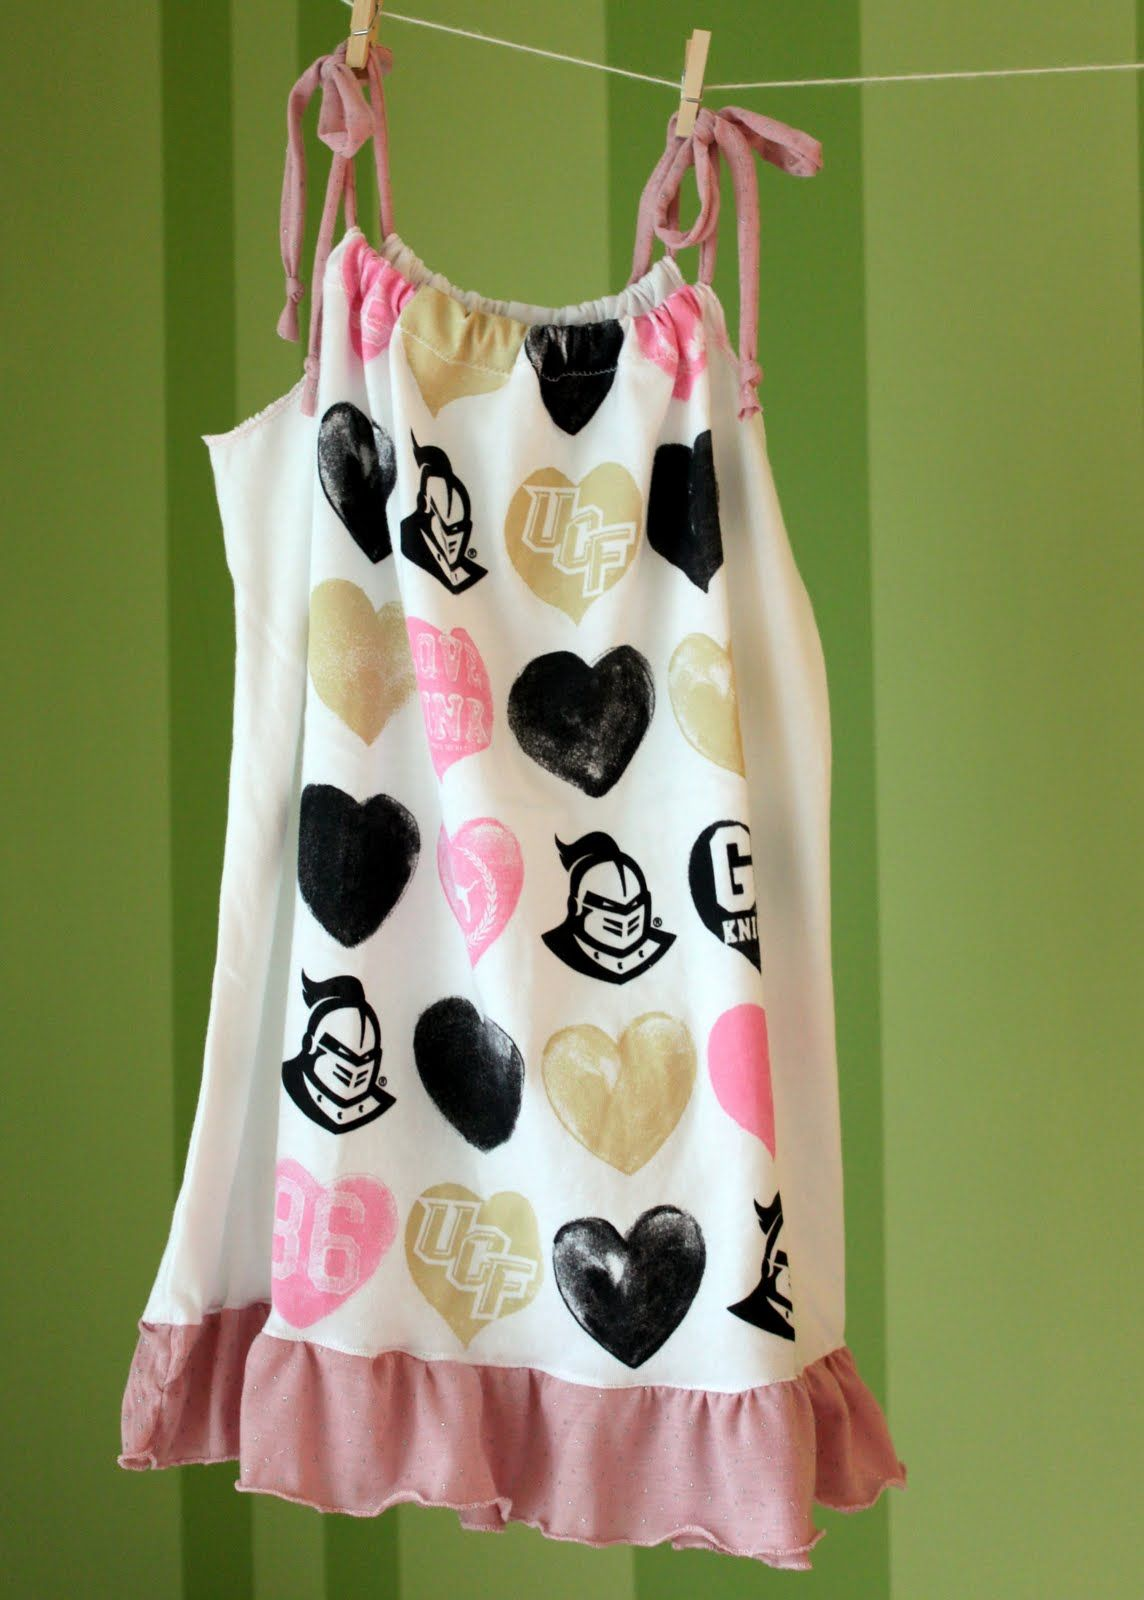 Upcycle Clothing Sewing | cute pillowcase dress upcycled from a t-shirt tut here & Upcycle Clothing Sewing | cute pillowcase dress upcycled from a t ... pillowsntoast.com